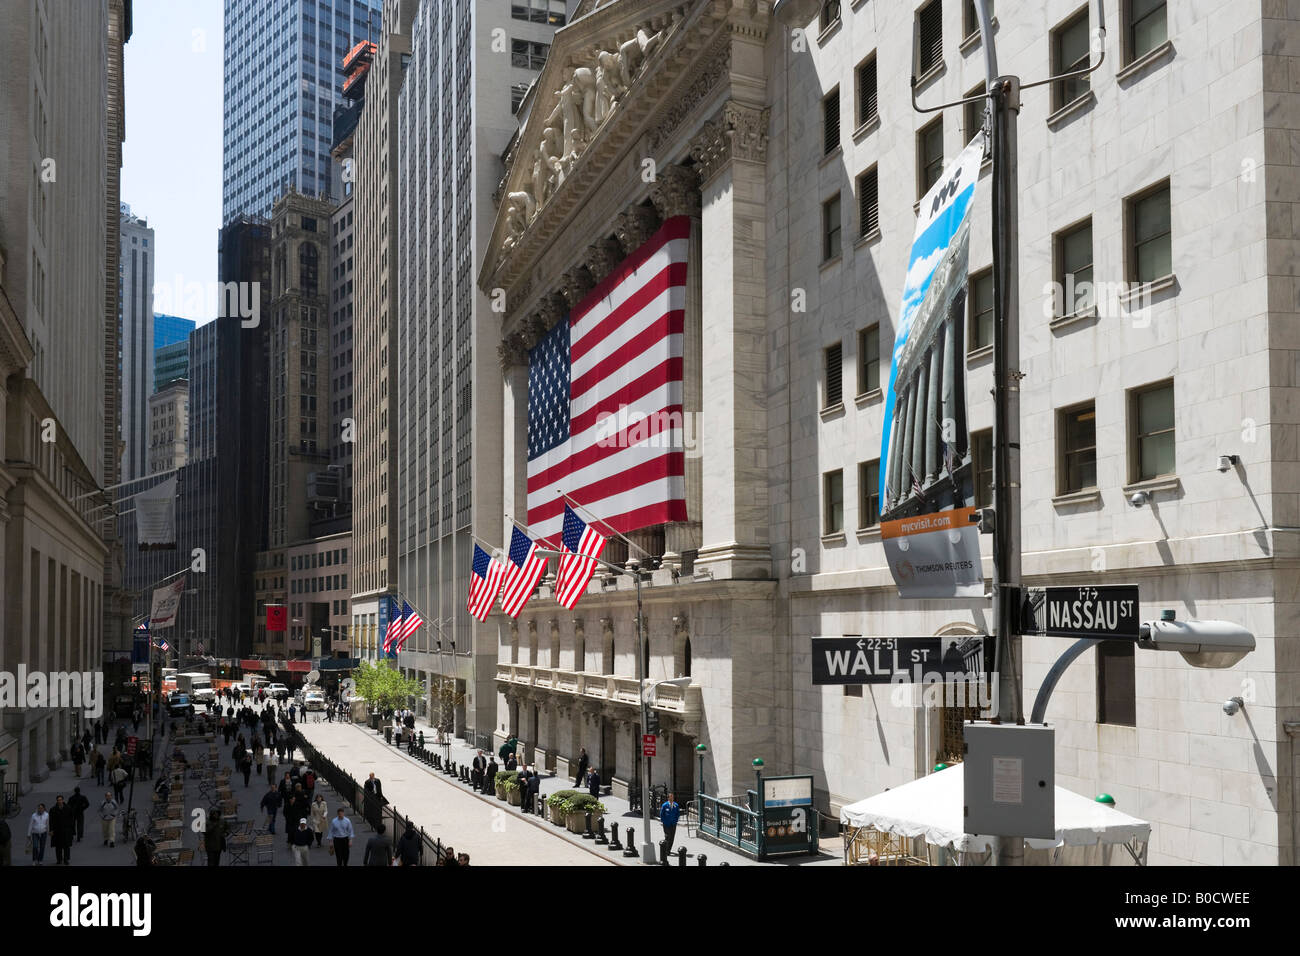 New York Stock Exchange (NYSE), Wall Street, Financial District, NYC, New York City Photo Stock